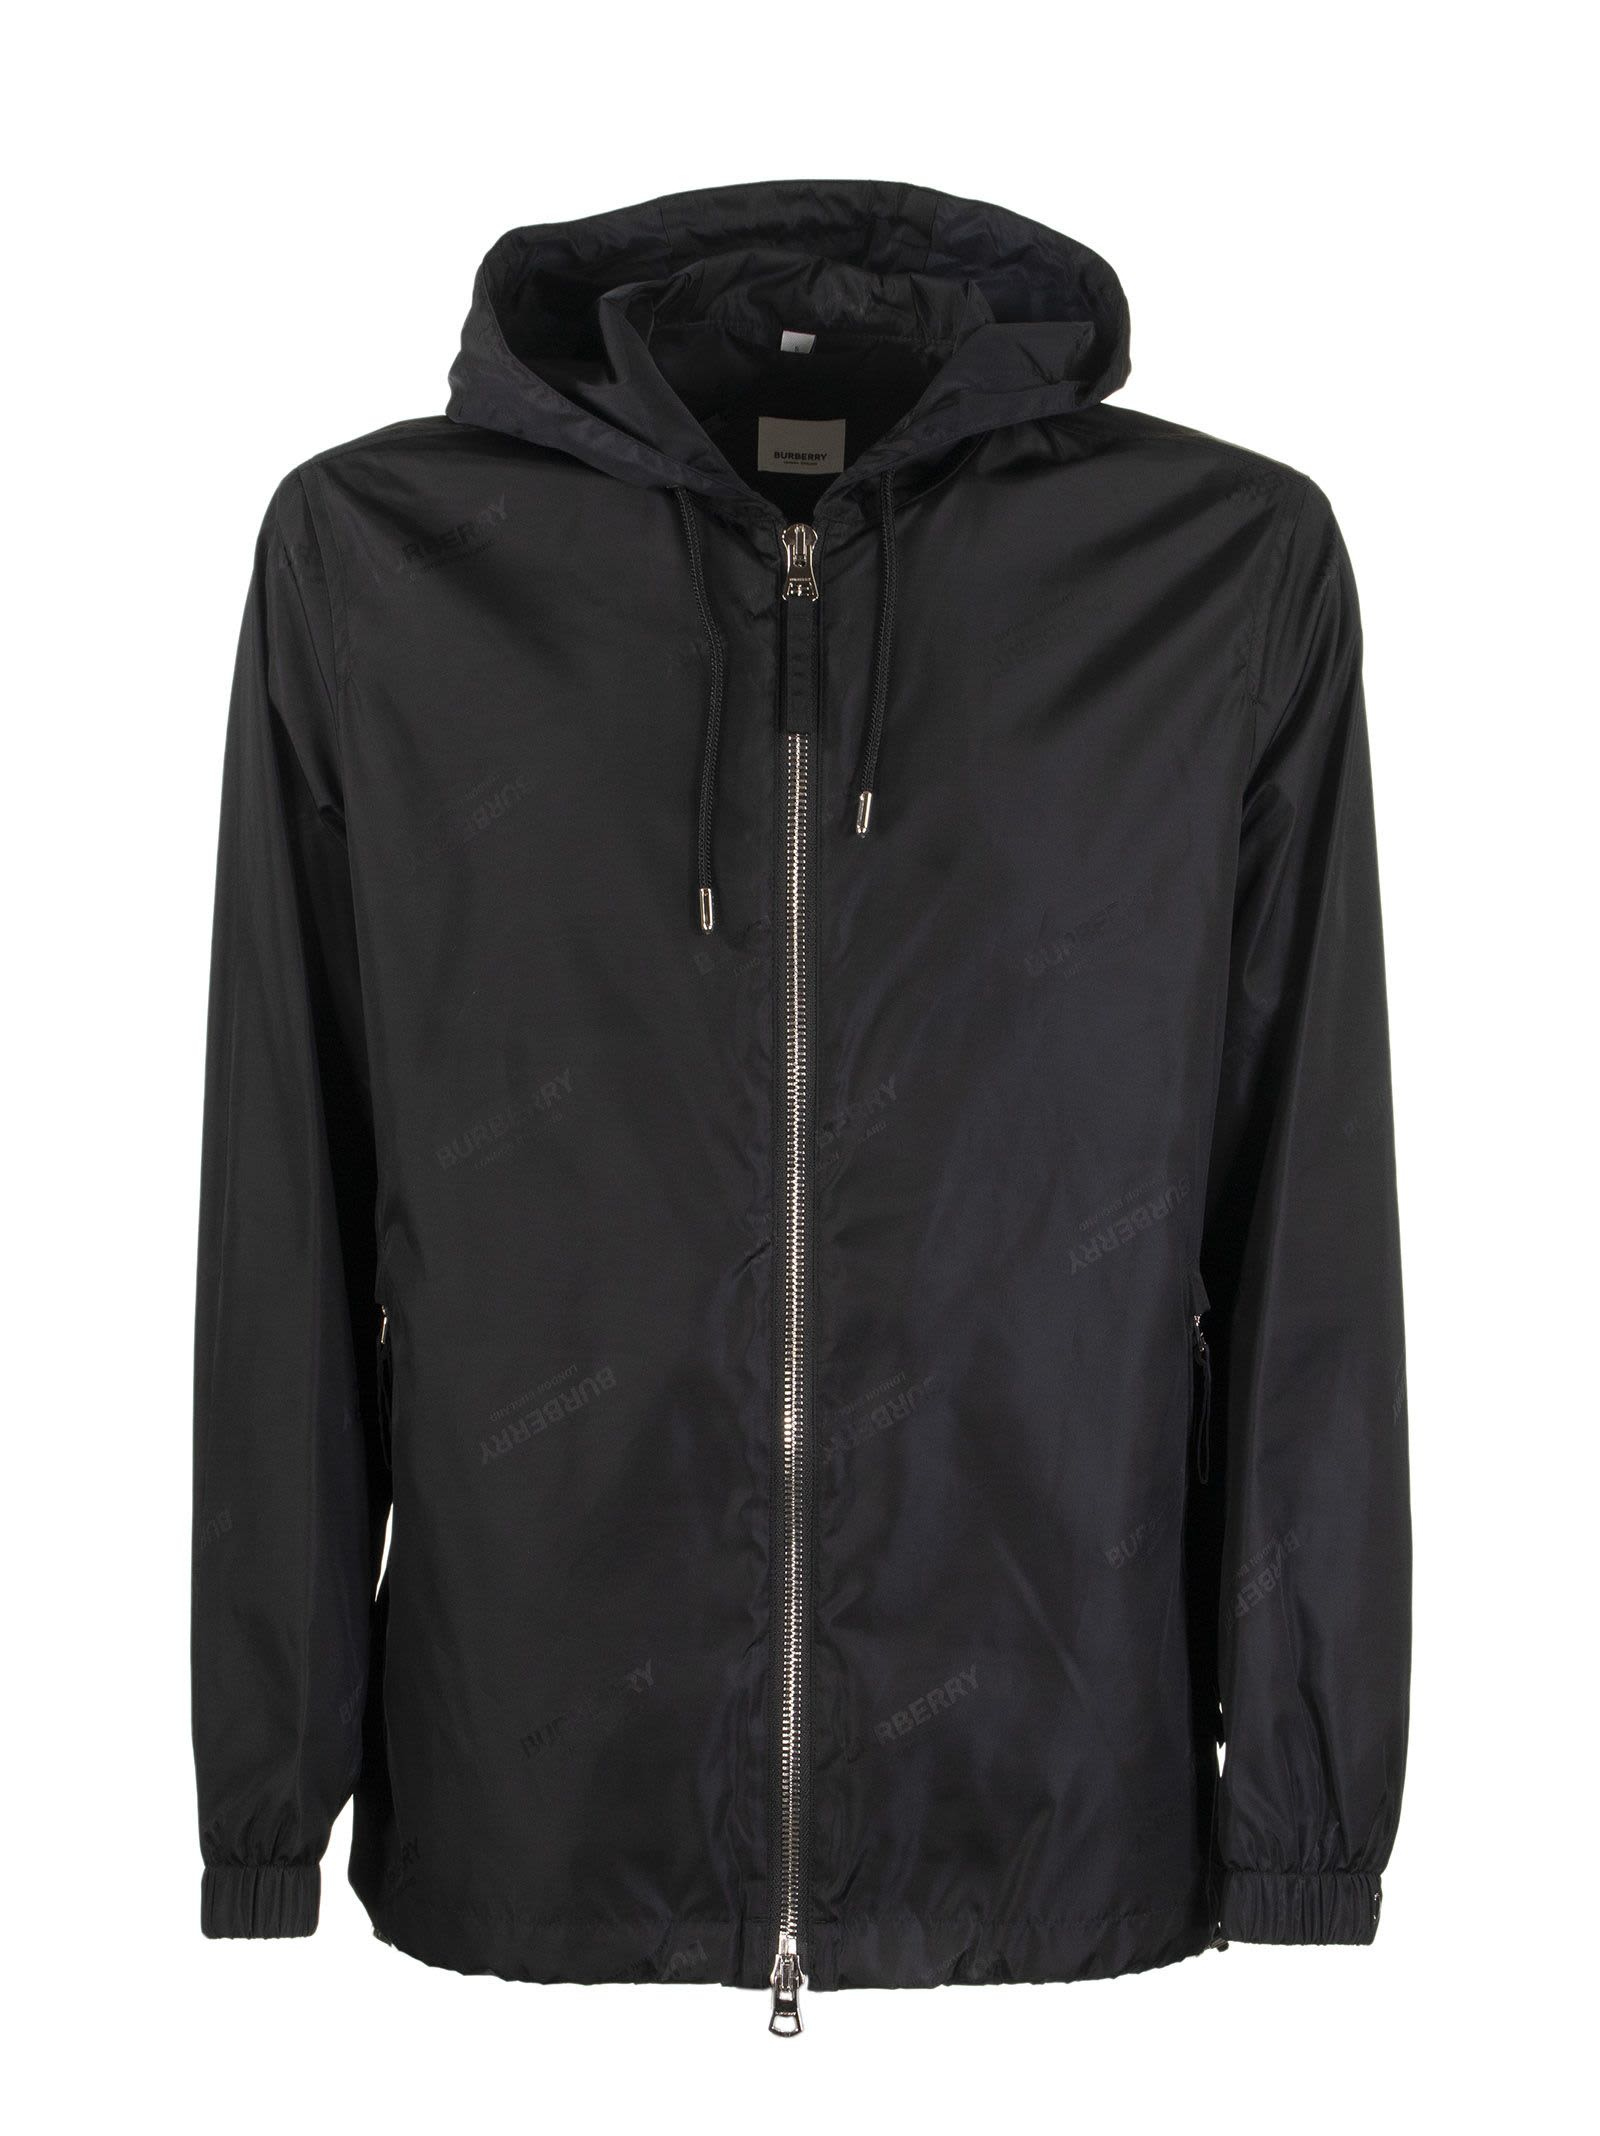 Logo Jacquard Econyl Hooded Jacket Stretton Black